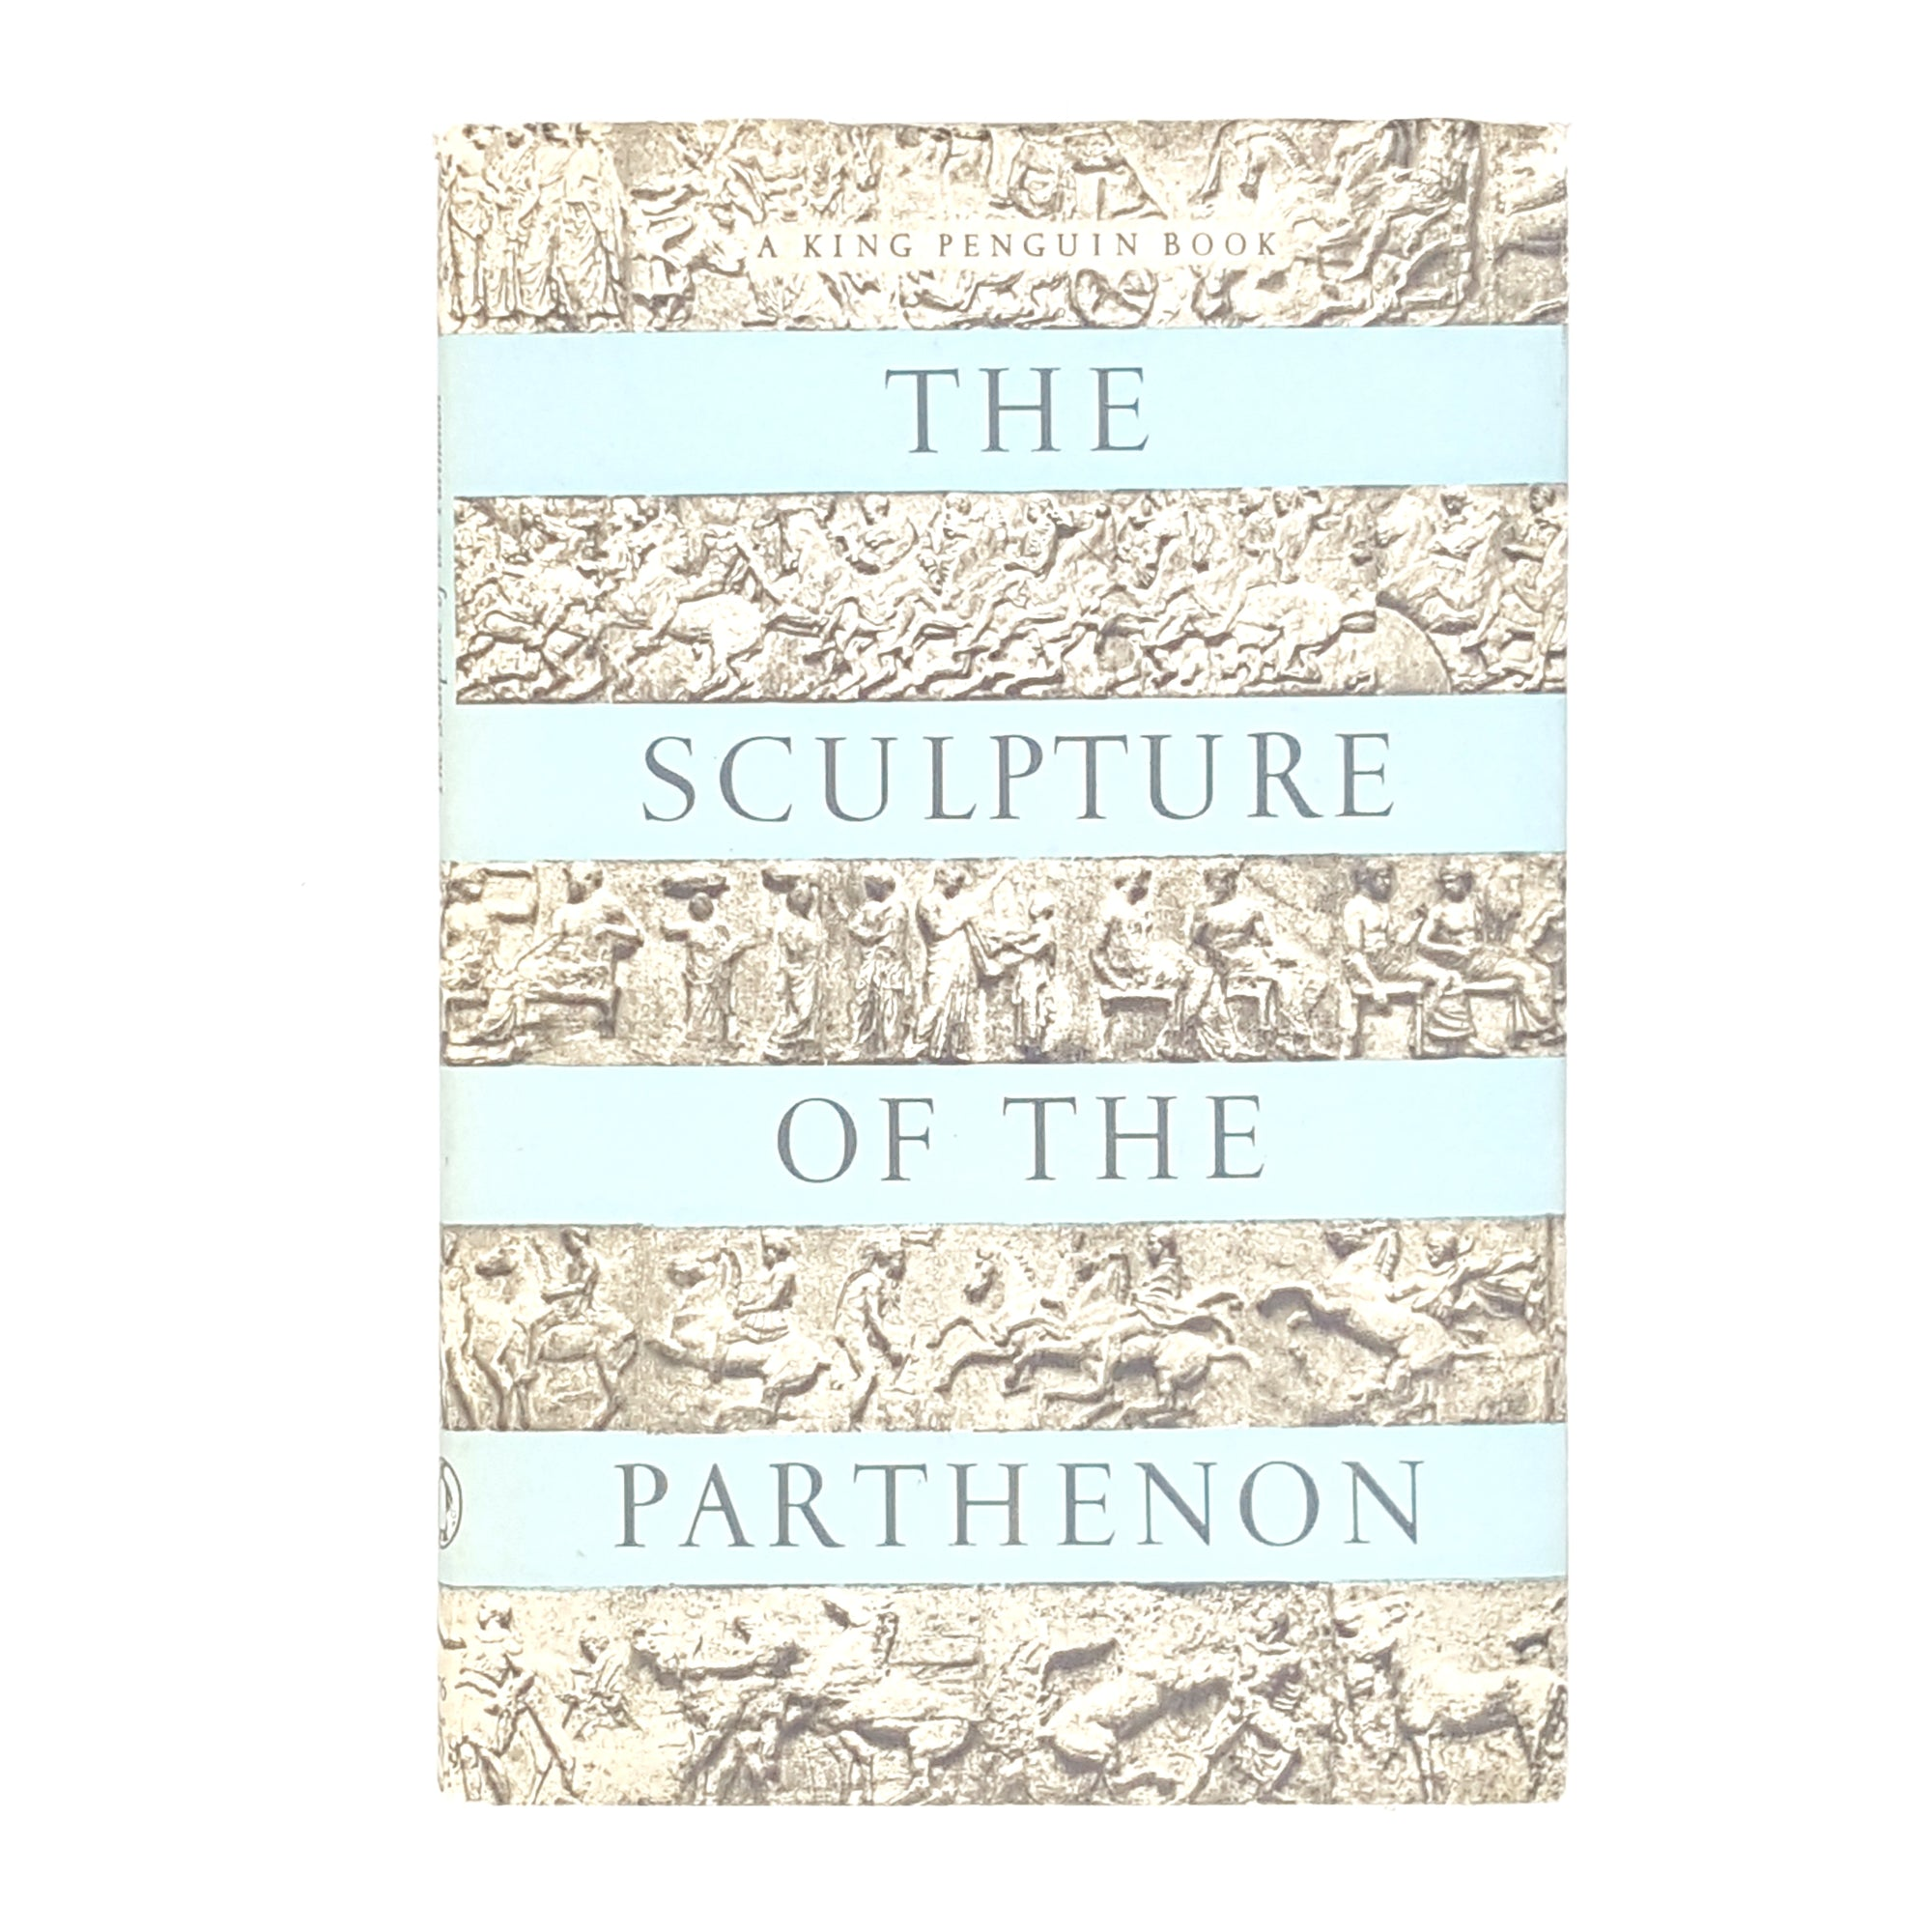 King Penguin: The Sculpture of the Parthenon 1959